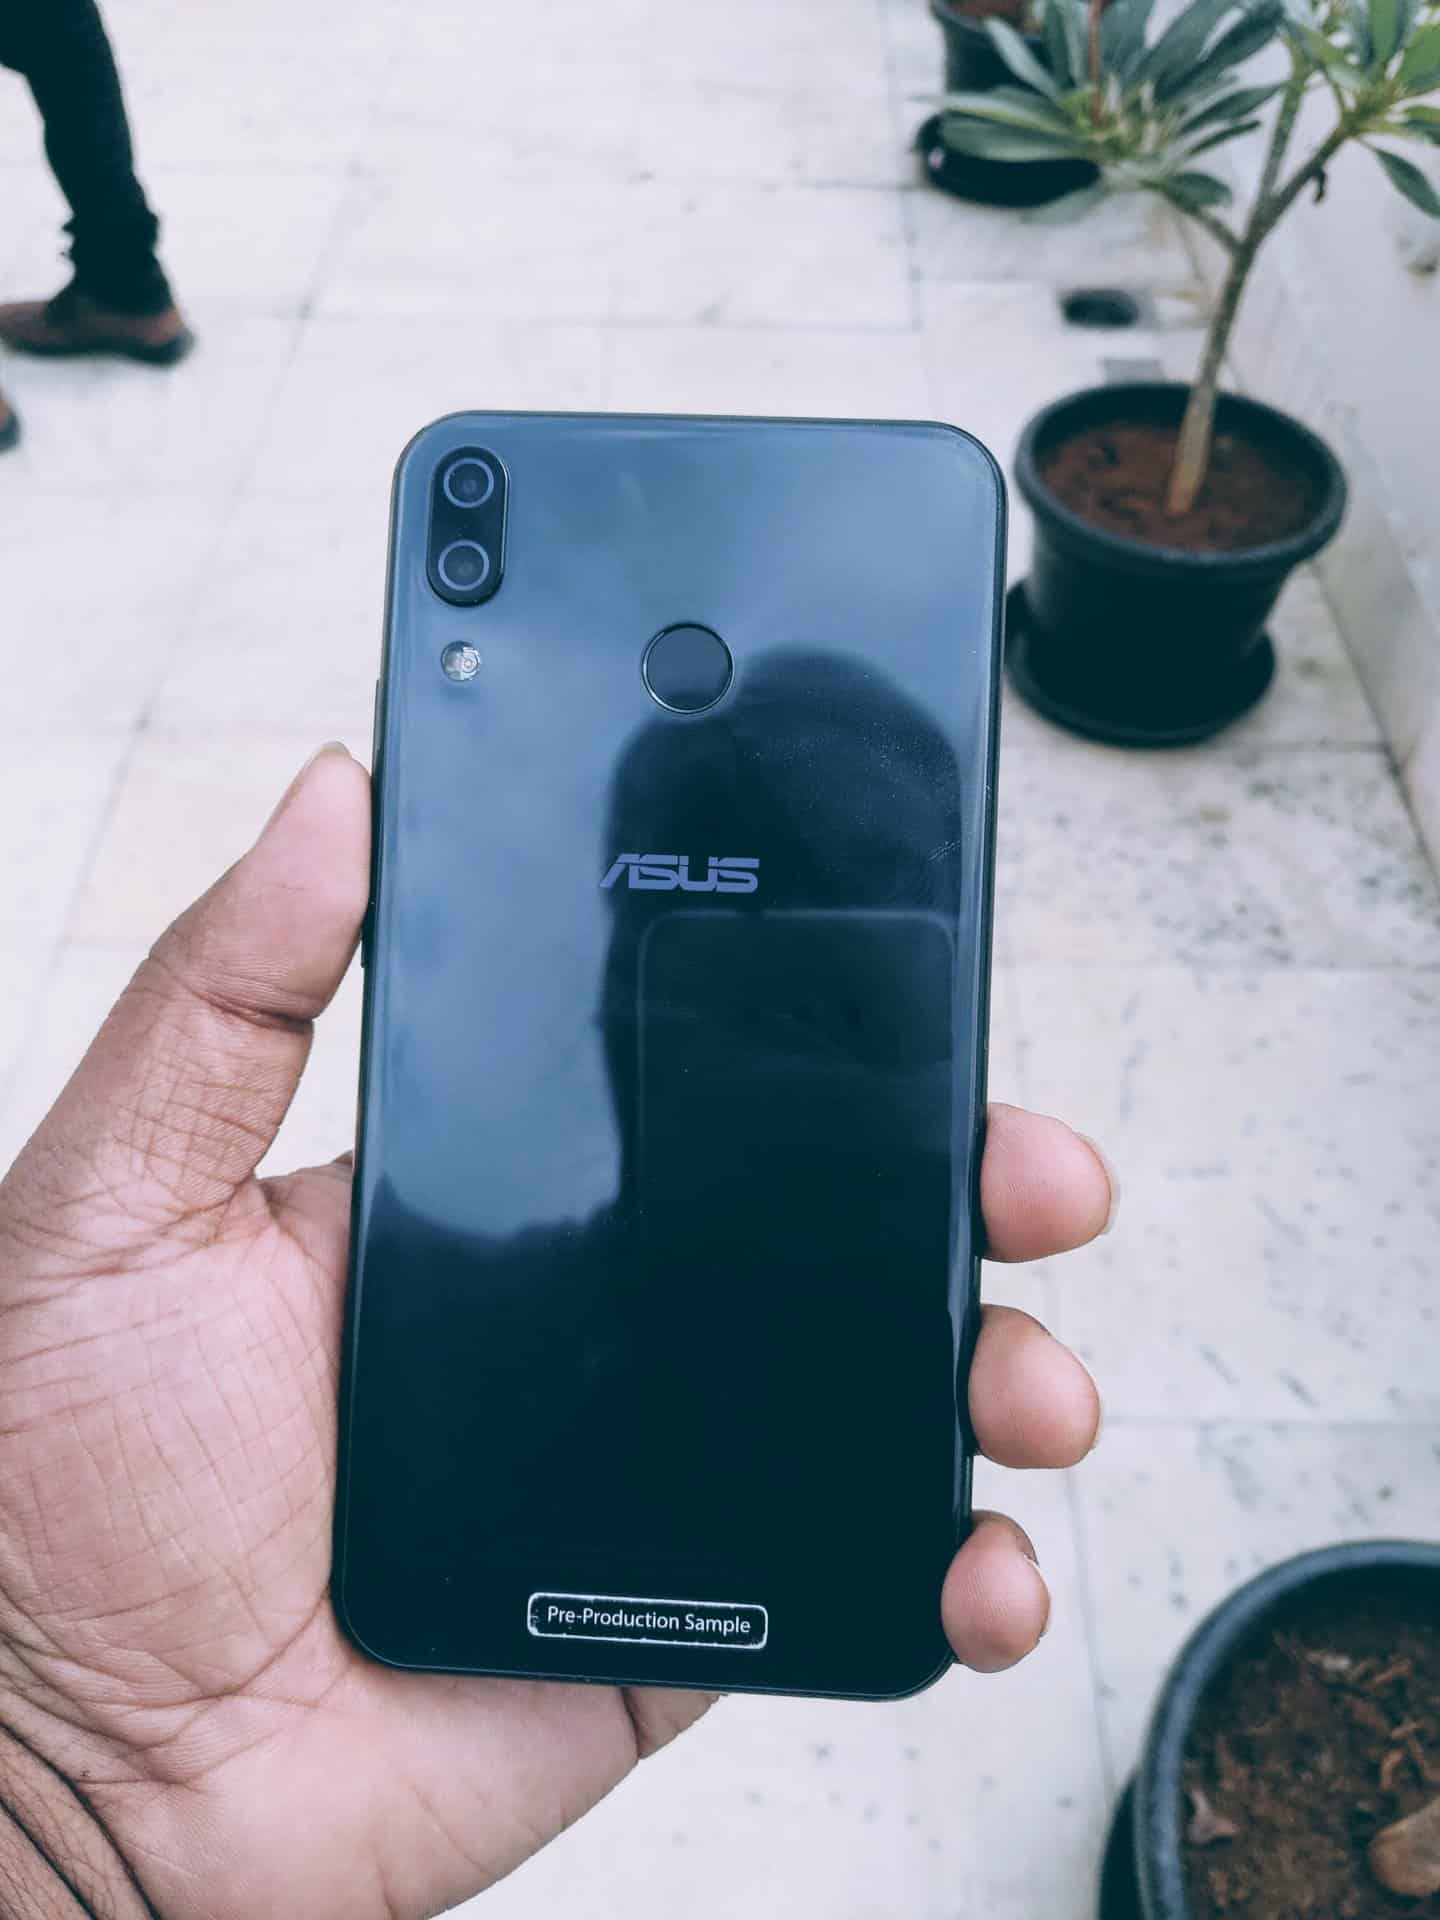 Zenfone 5 Hands-On and First Impressions - 5